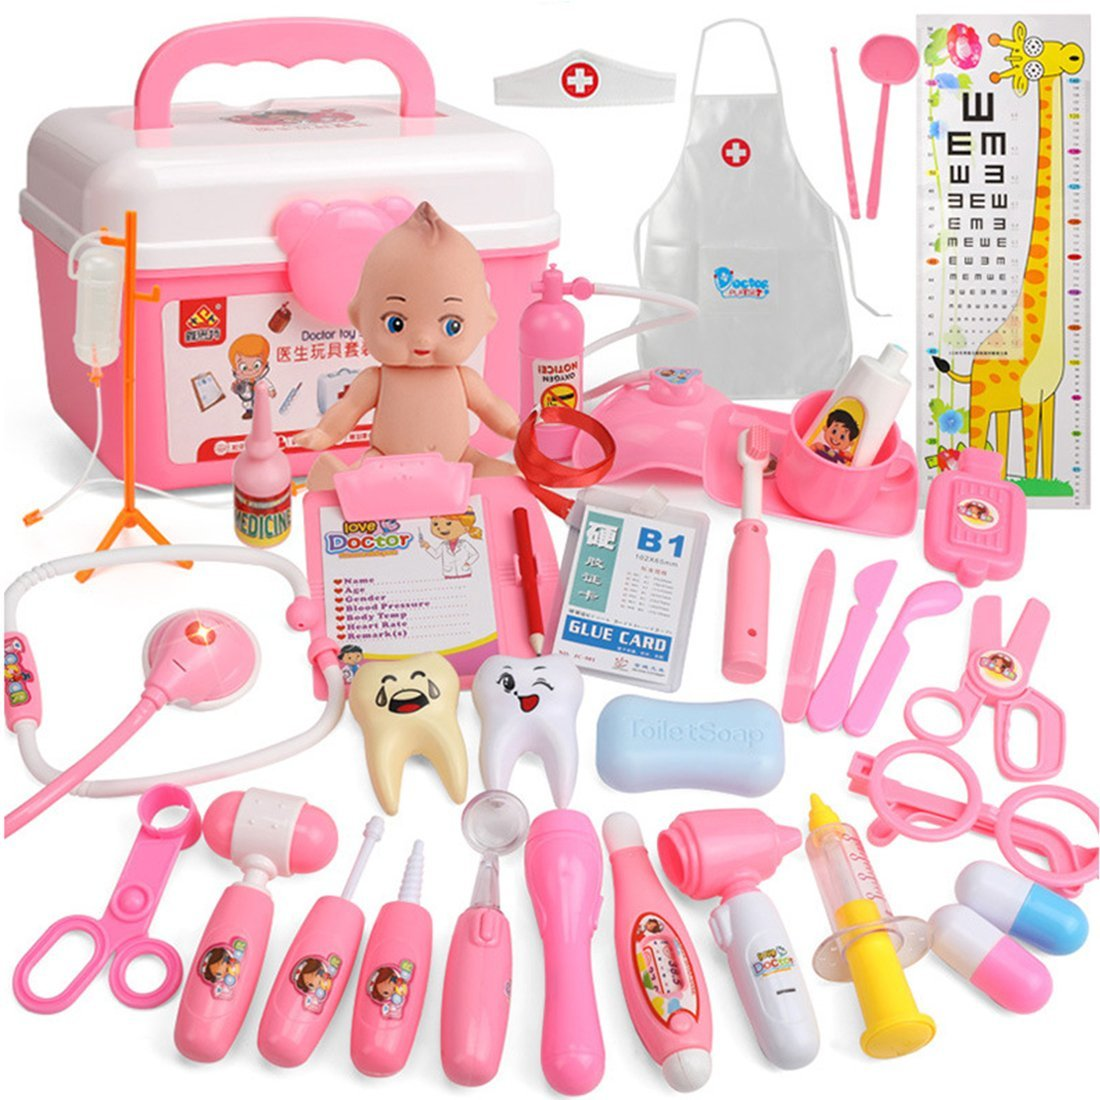 Kids Toys Doctor Set Baby Suitcases Medical kit Cosplay Dent